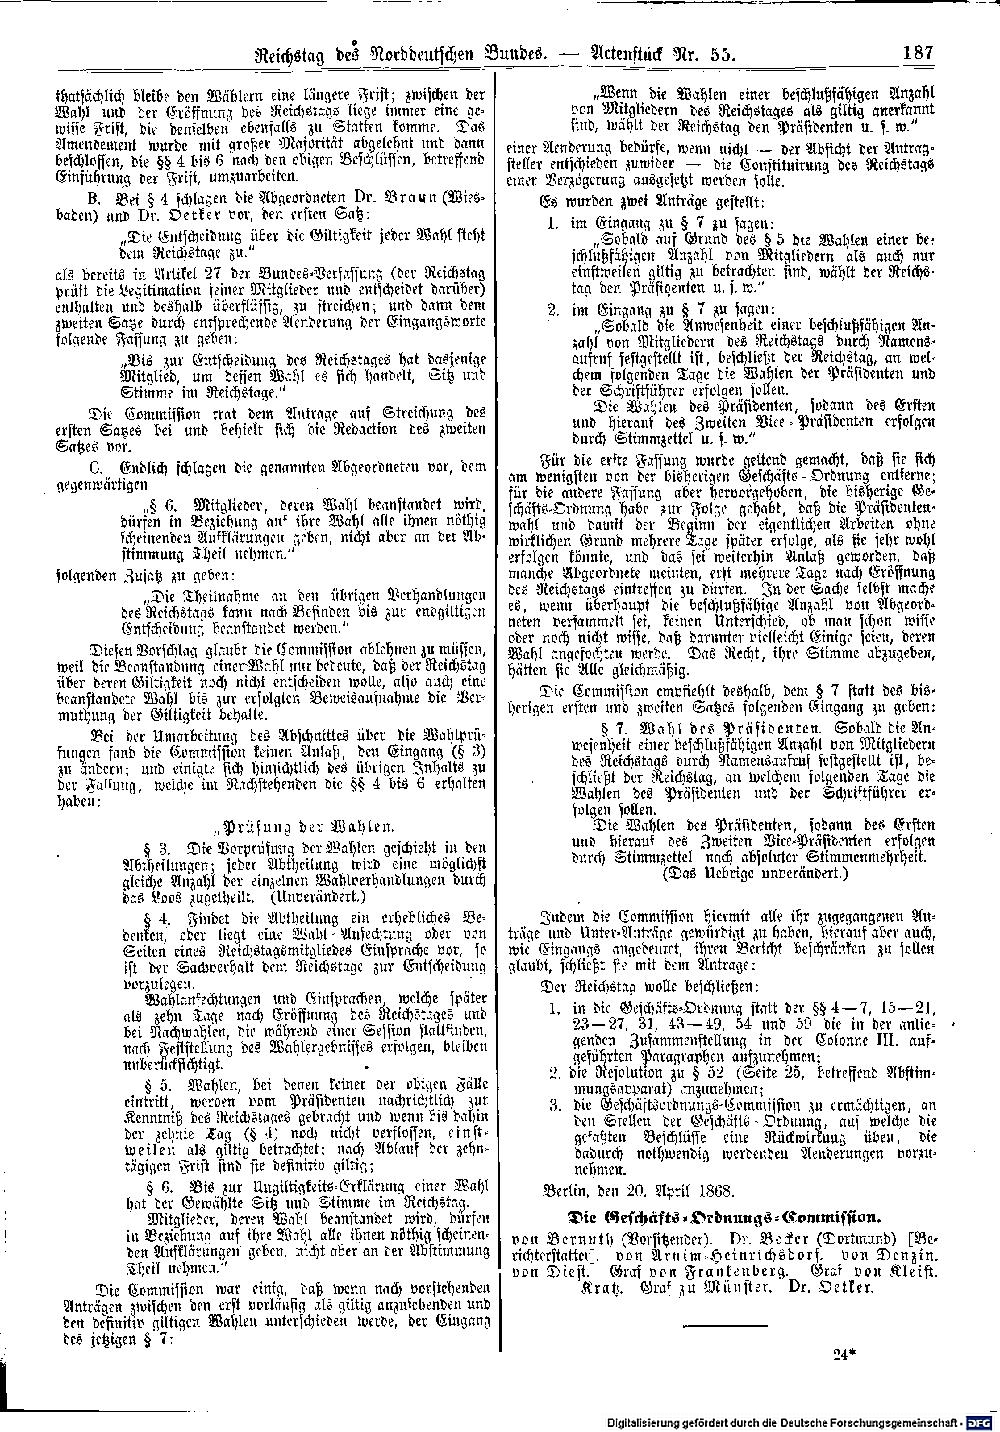 Scan of page 187